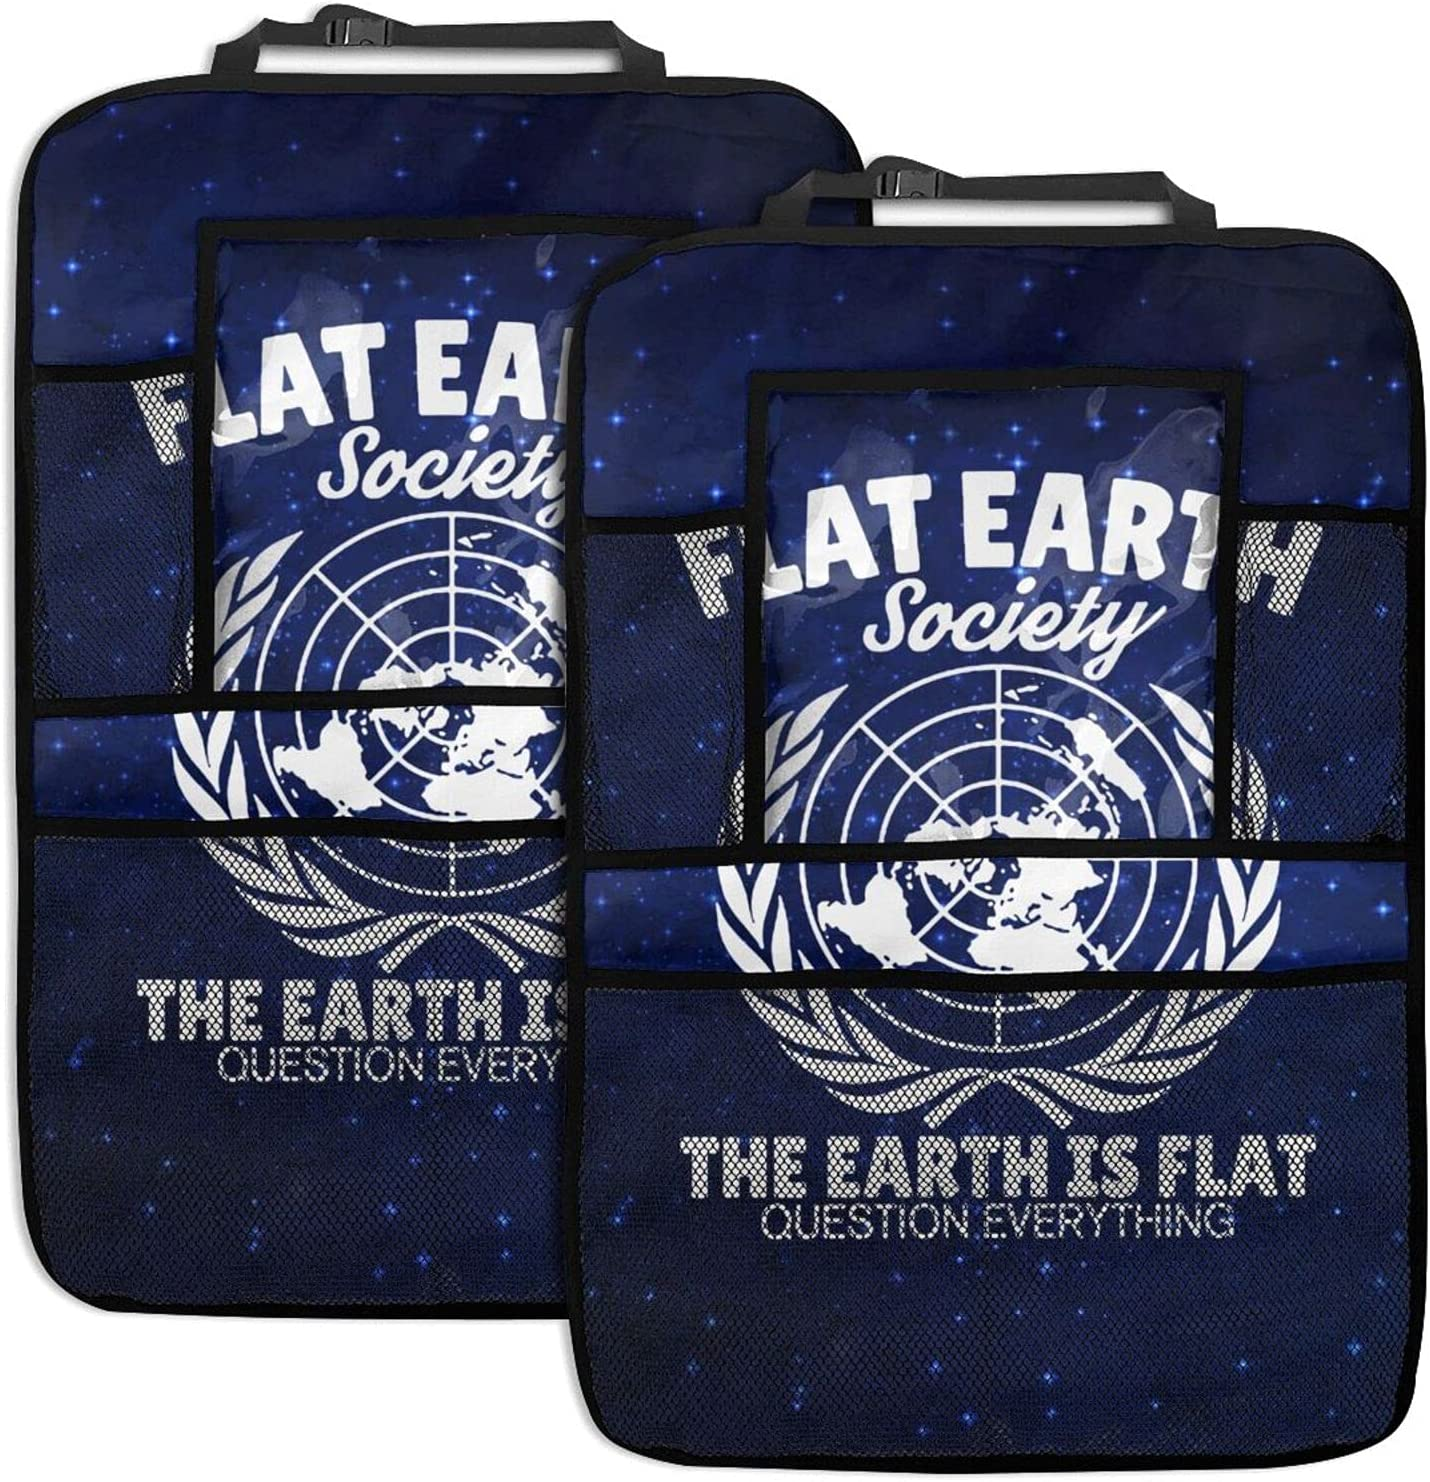 Free shipping anywhere in the nation Flat Earth 2pc Car Backseat Seat Back Kick Organizer Protectors Brand Cheap Sale Venue